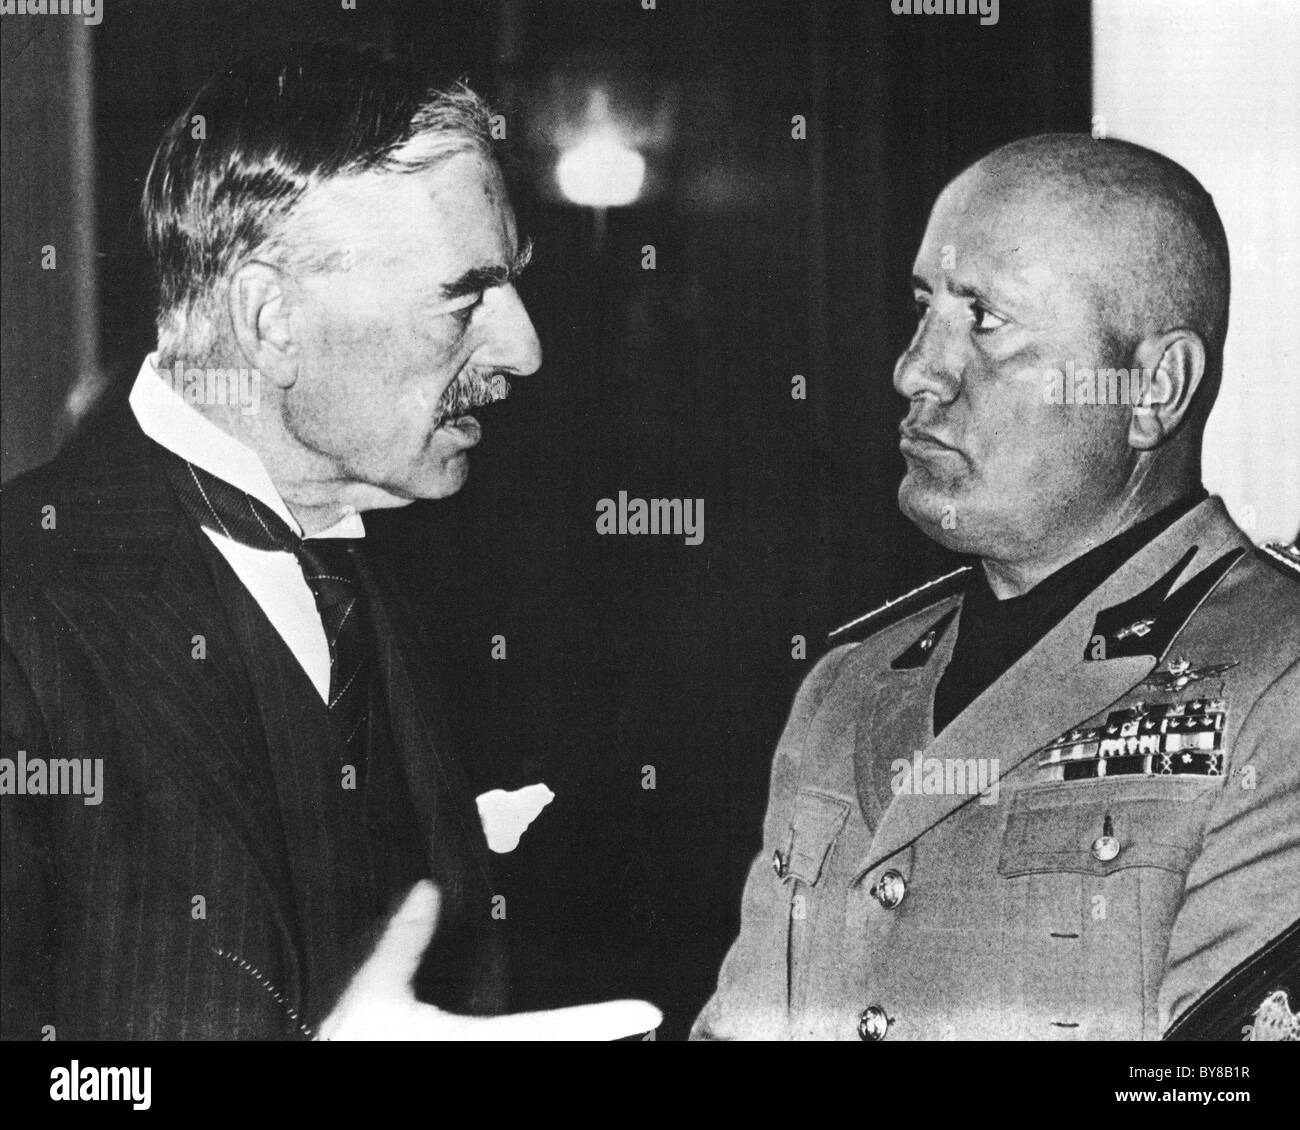 Neville Chamberlain British Prime Minister At Left And Mussolini